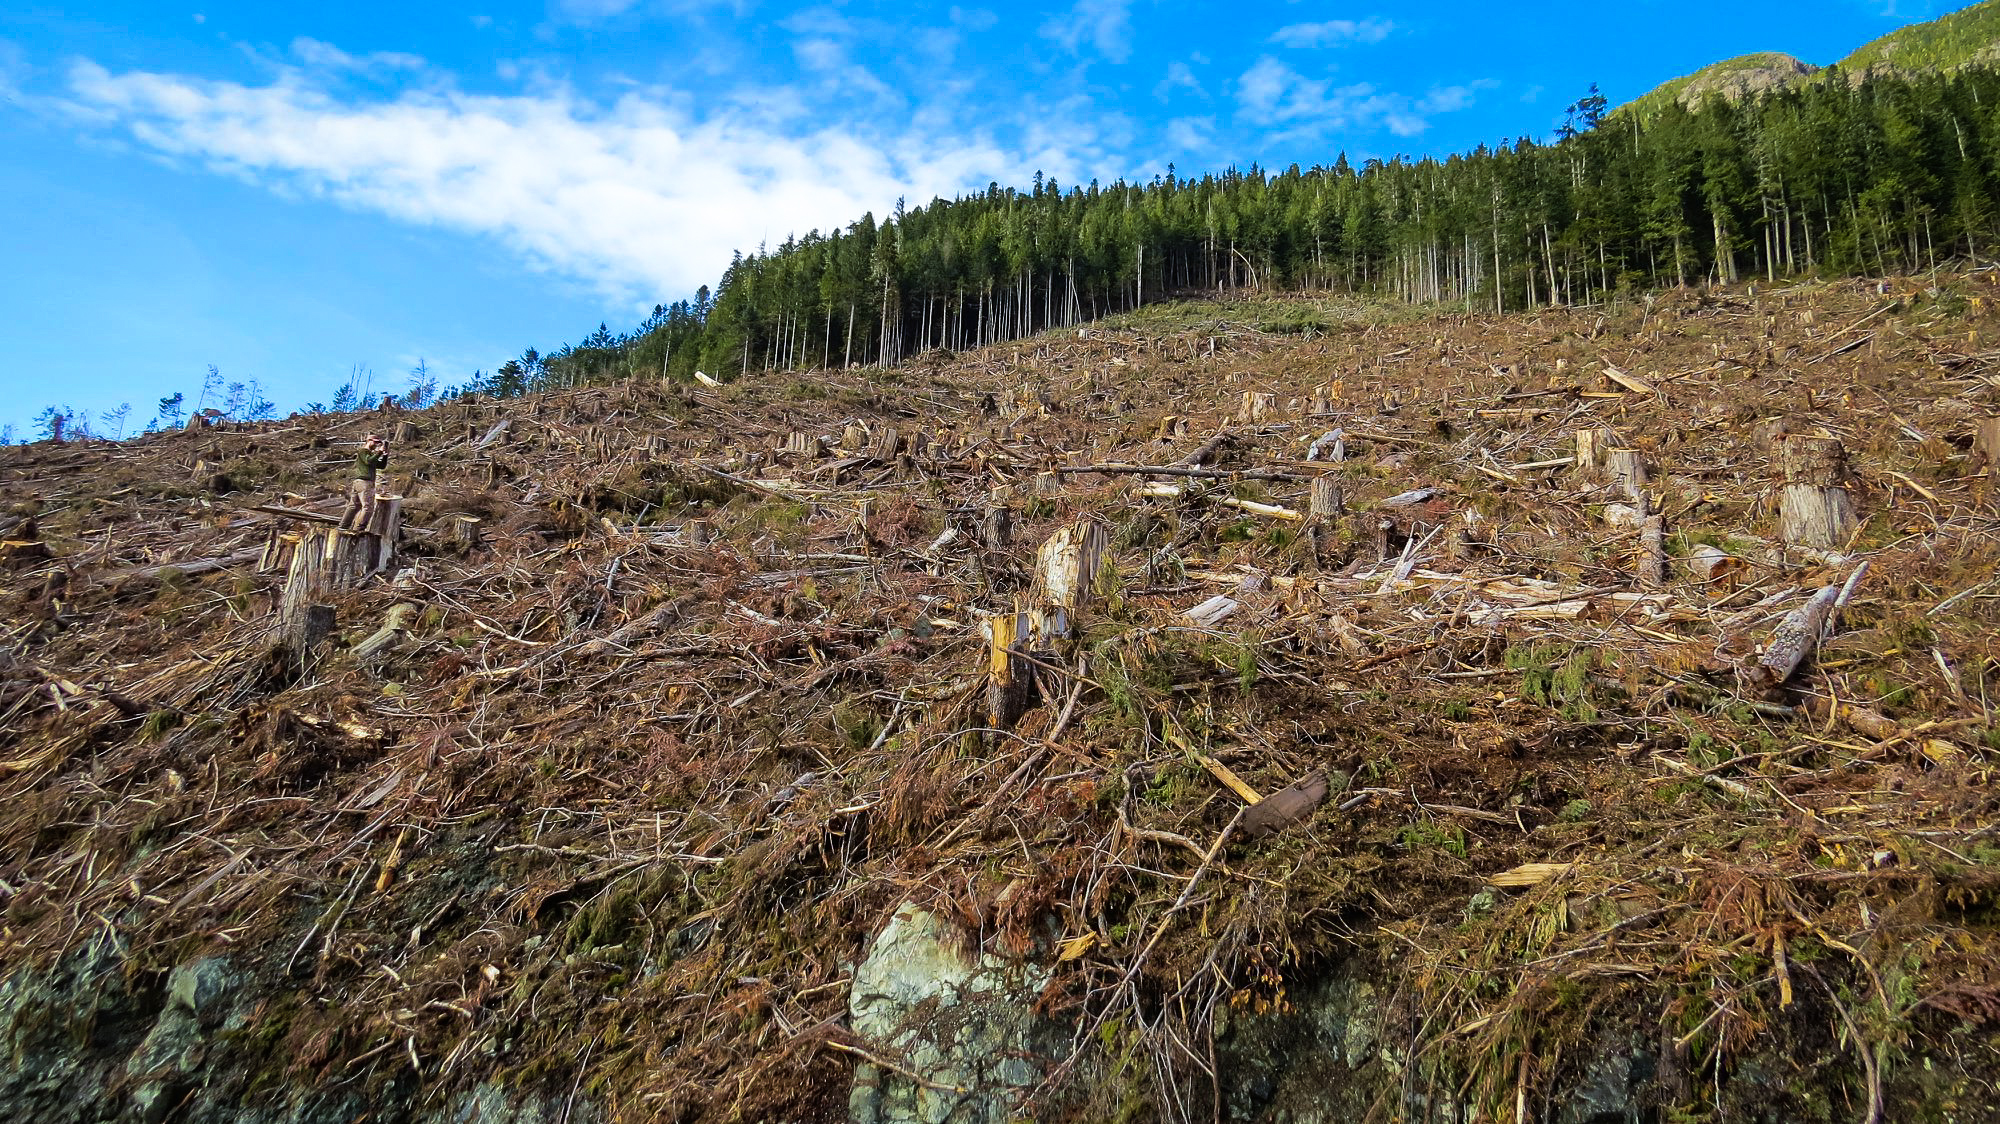 Sierra Club BC campaigner Mark Worthing in a clearcut at Schmidt Creek. Photo: Torrance Coste / Wilderness Committee